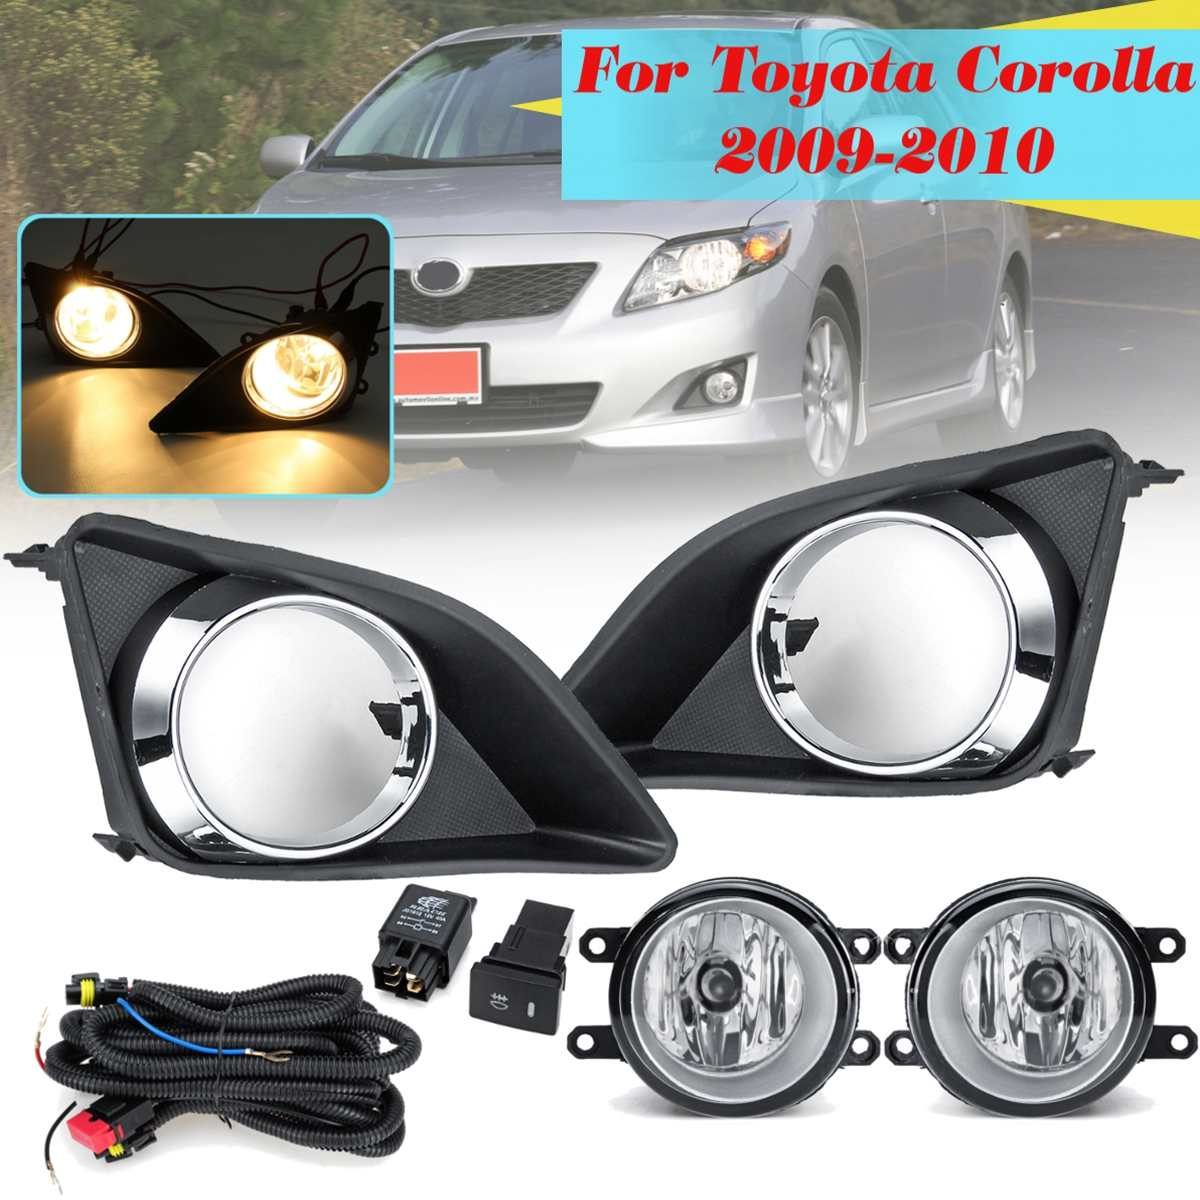 Car Fog light With Cover Switch For <font><b>Toyota</b></font> <font><b>Corolla</b></font> <font><b>2009</b></font> 2010 Foglight Front Lower Bumper Fog lamp Driving light drl <font><b>Accessorie</b></font> image